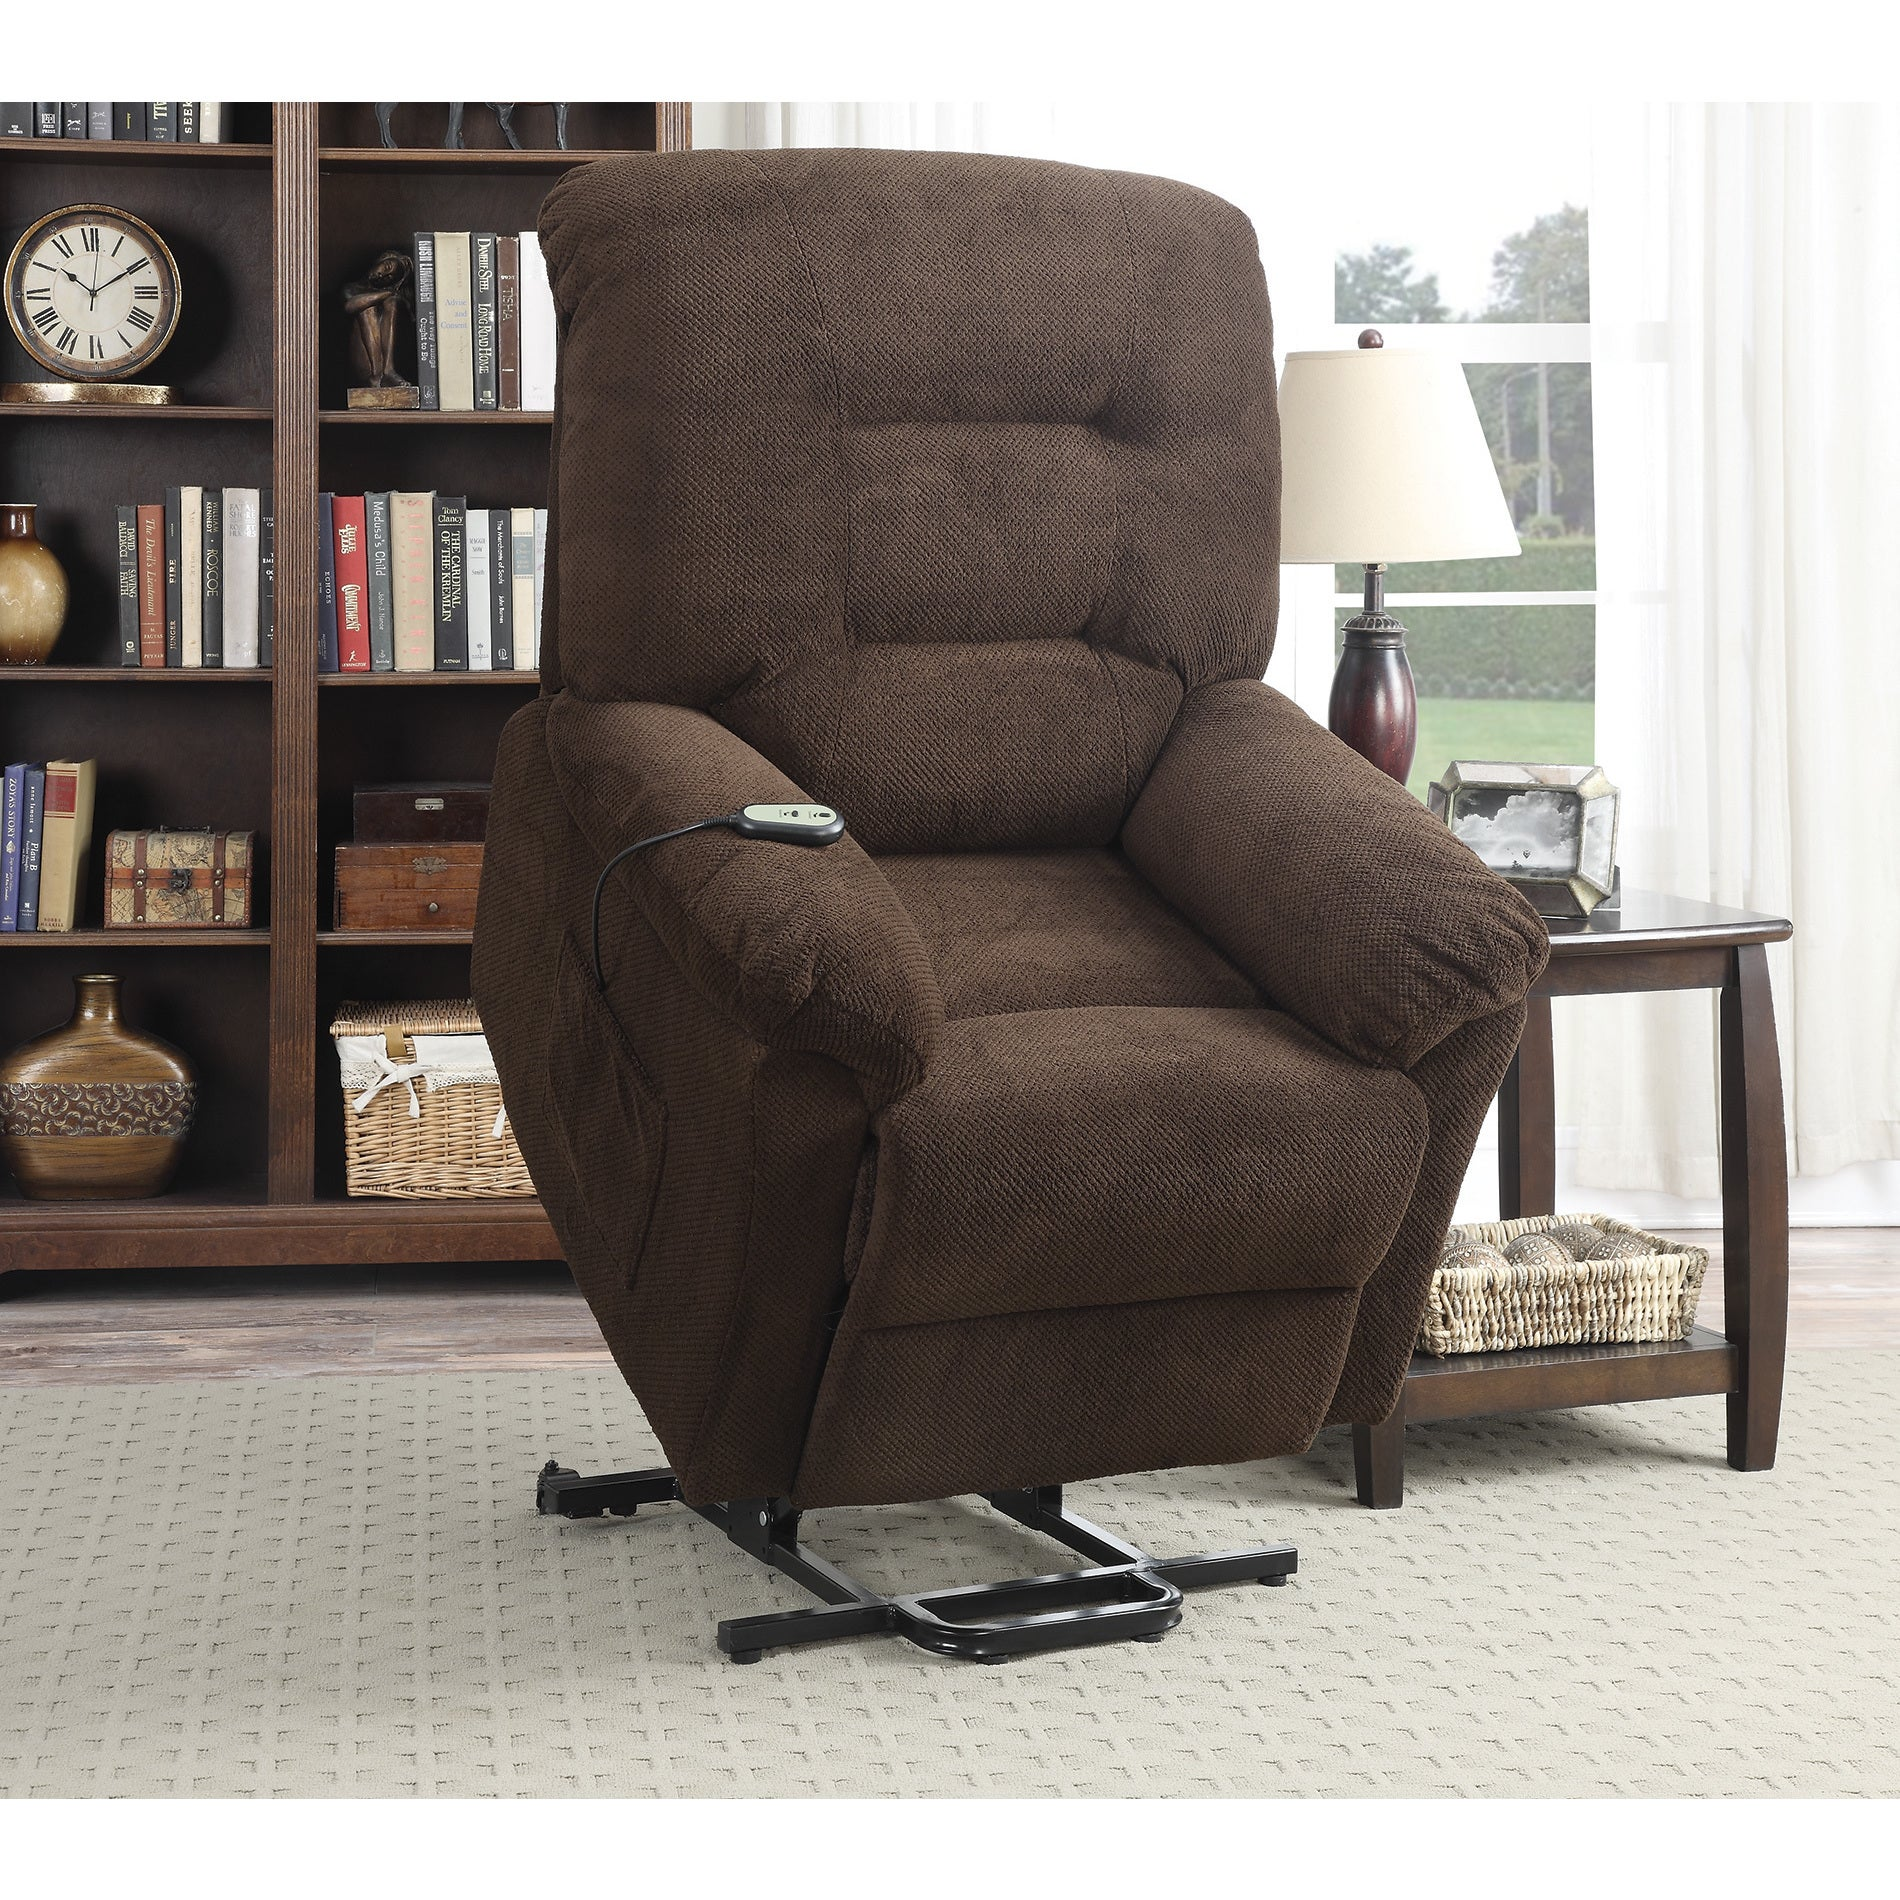 Coaster Furniture Chocolate Textured Chenille Power Lift ...